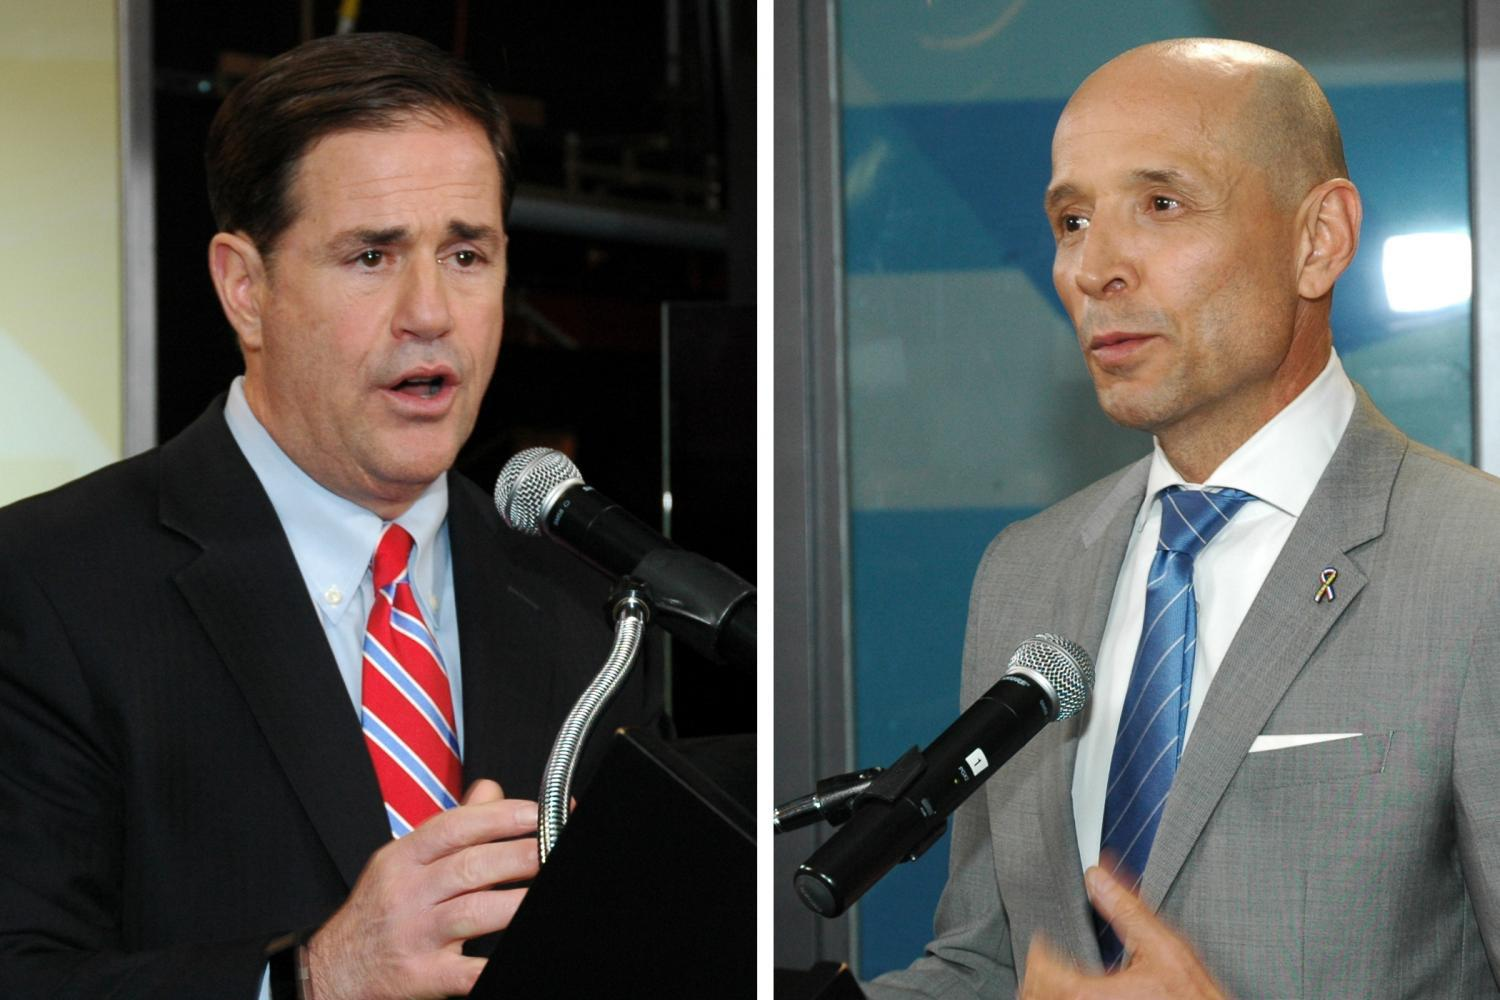 Doug Ducey and David Garcia